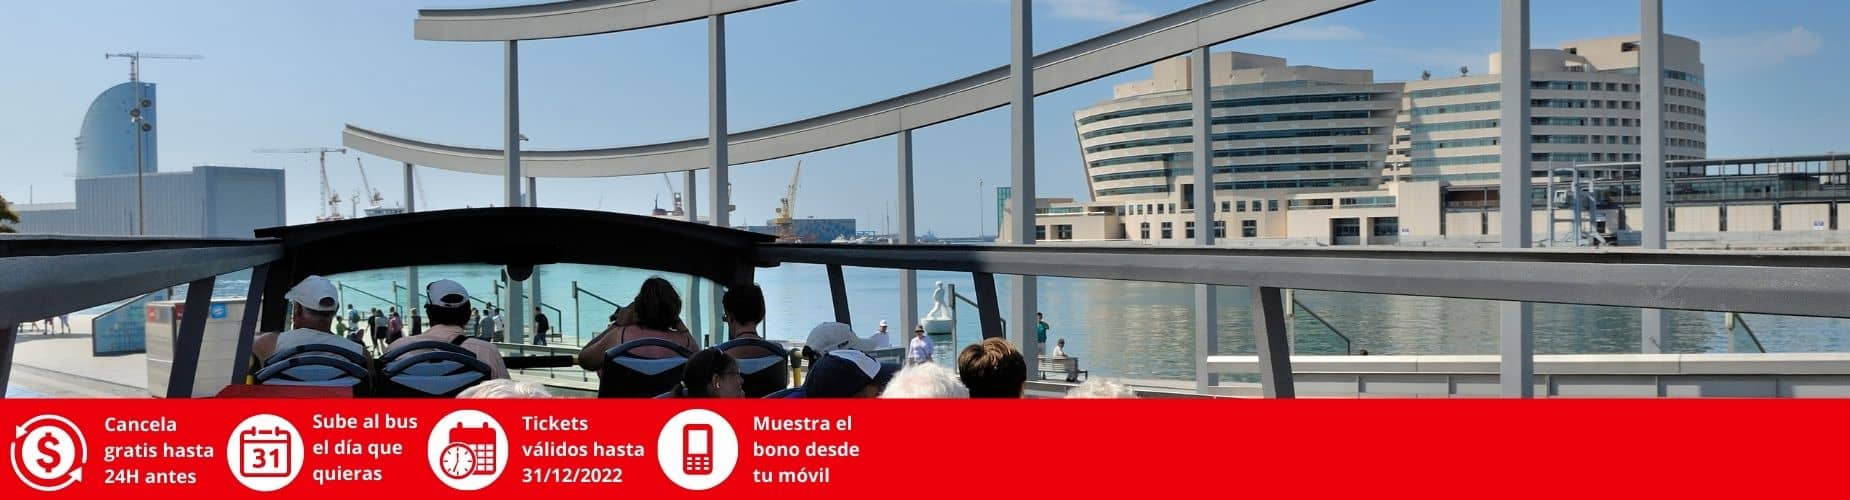 Cancelacion gratis Barcelona City Tour